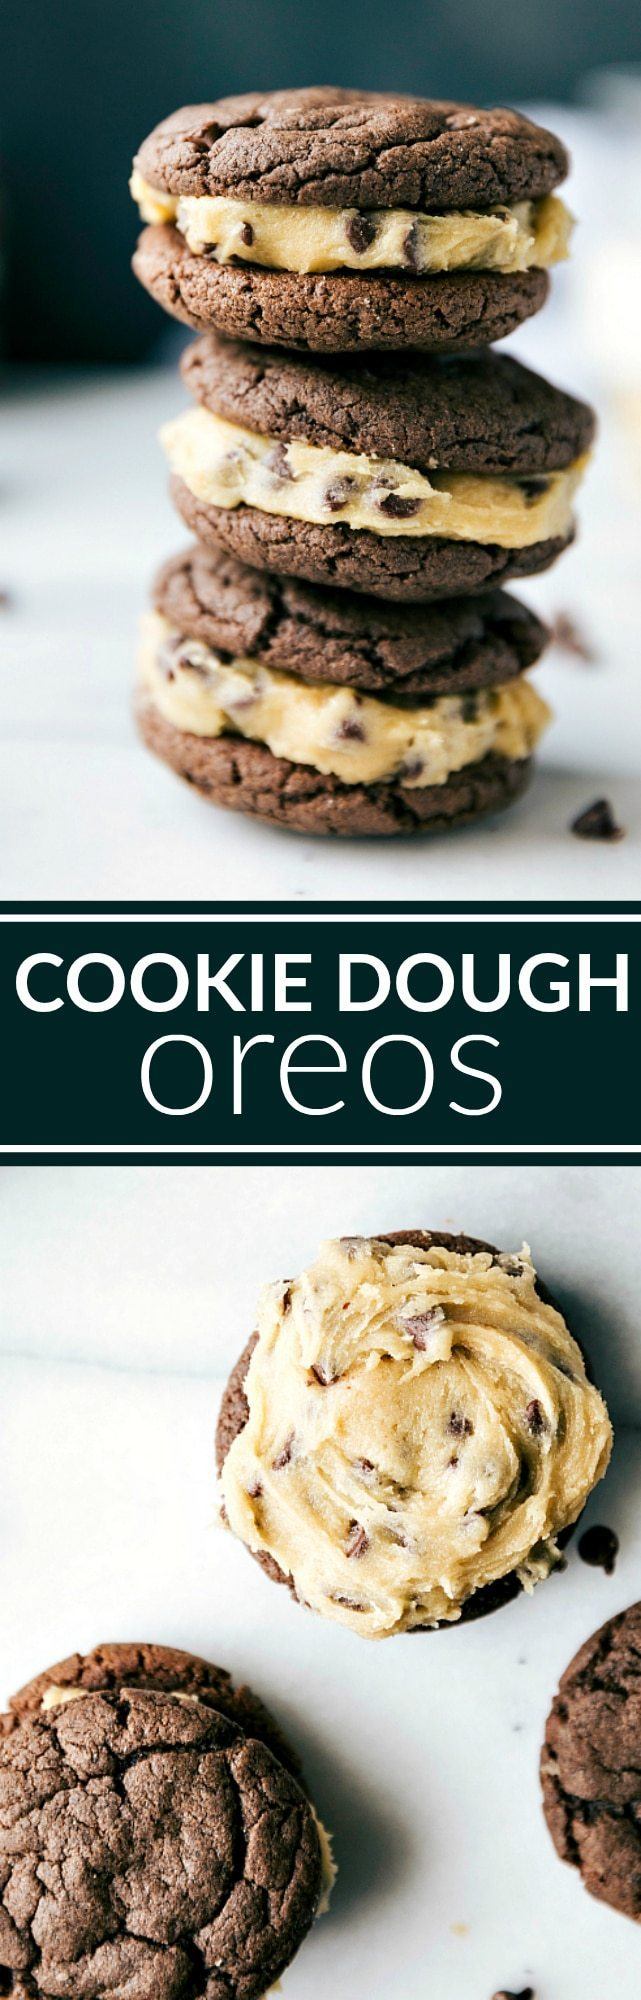 COOKIE DOUGH OREOS: Cookie dough frosting in between two soft chocolate cookies. The chocolate cookies have only 4 ingredients and take less than 5 minutes to make! Recipe from chelseasmessyapron.com